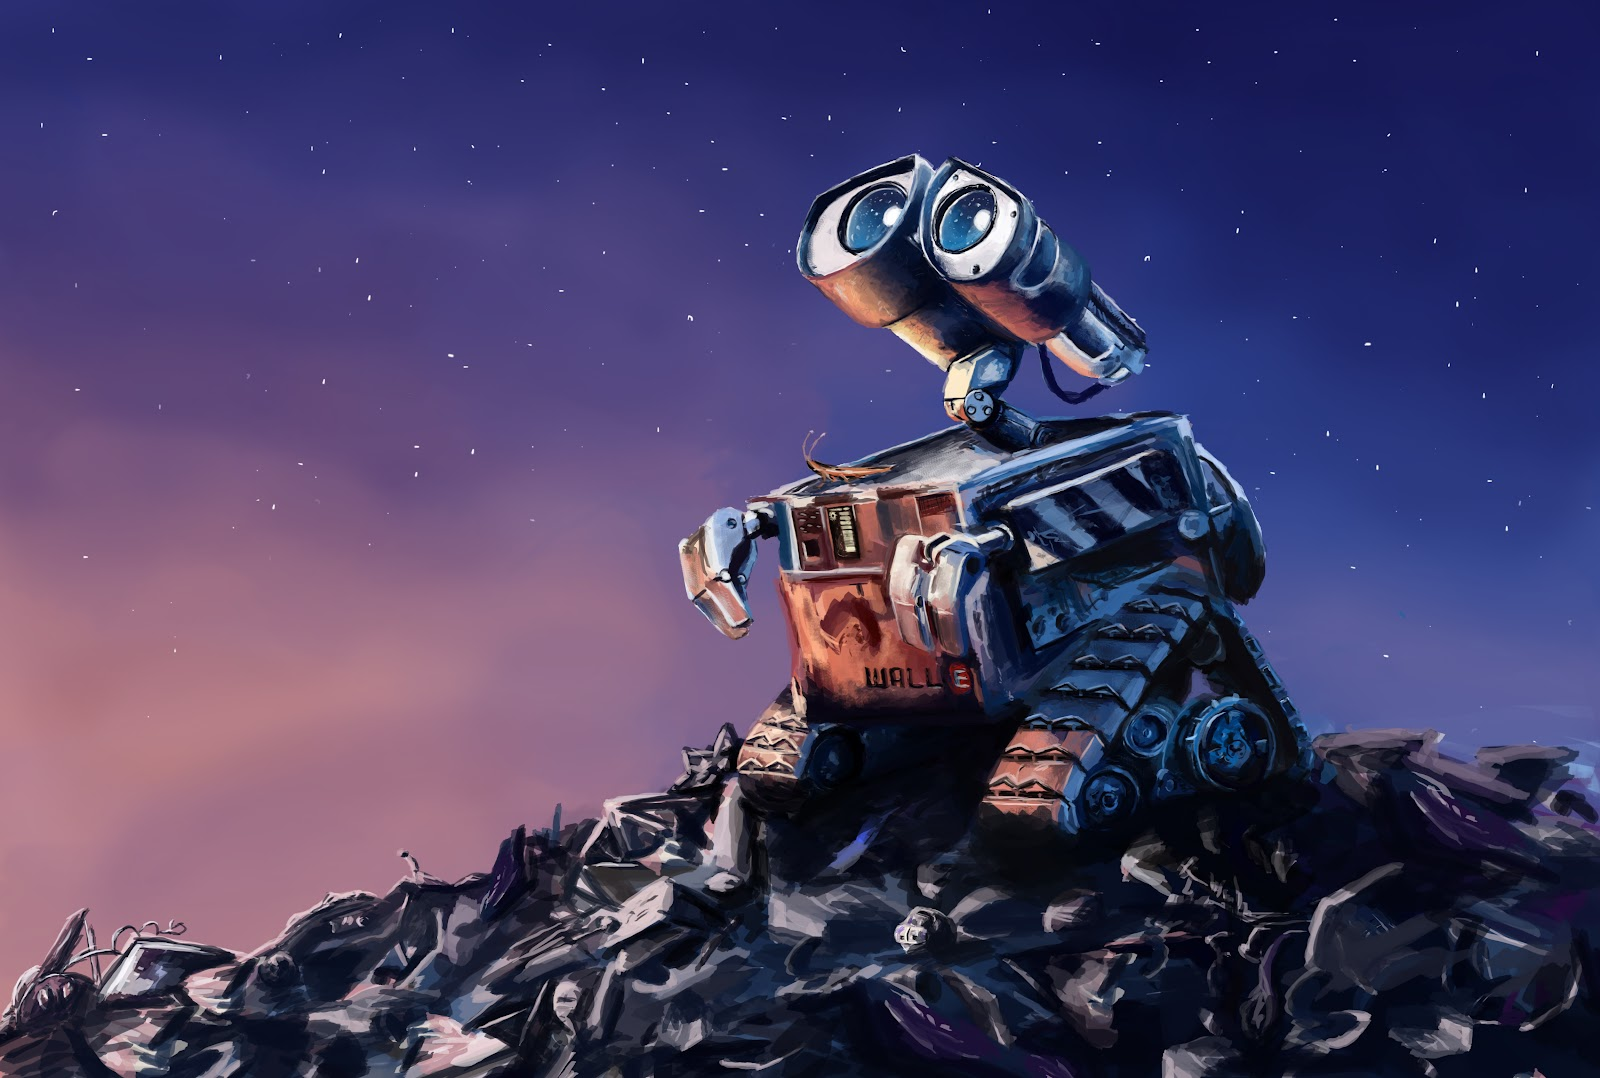 wall_e_by_tryingdrawingg-d67f3uh.jpg